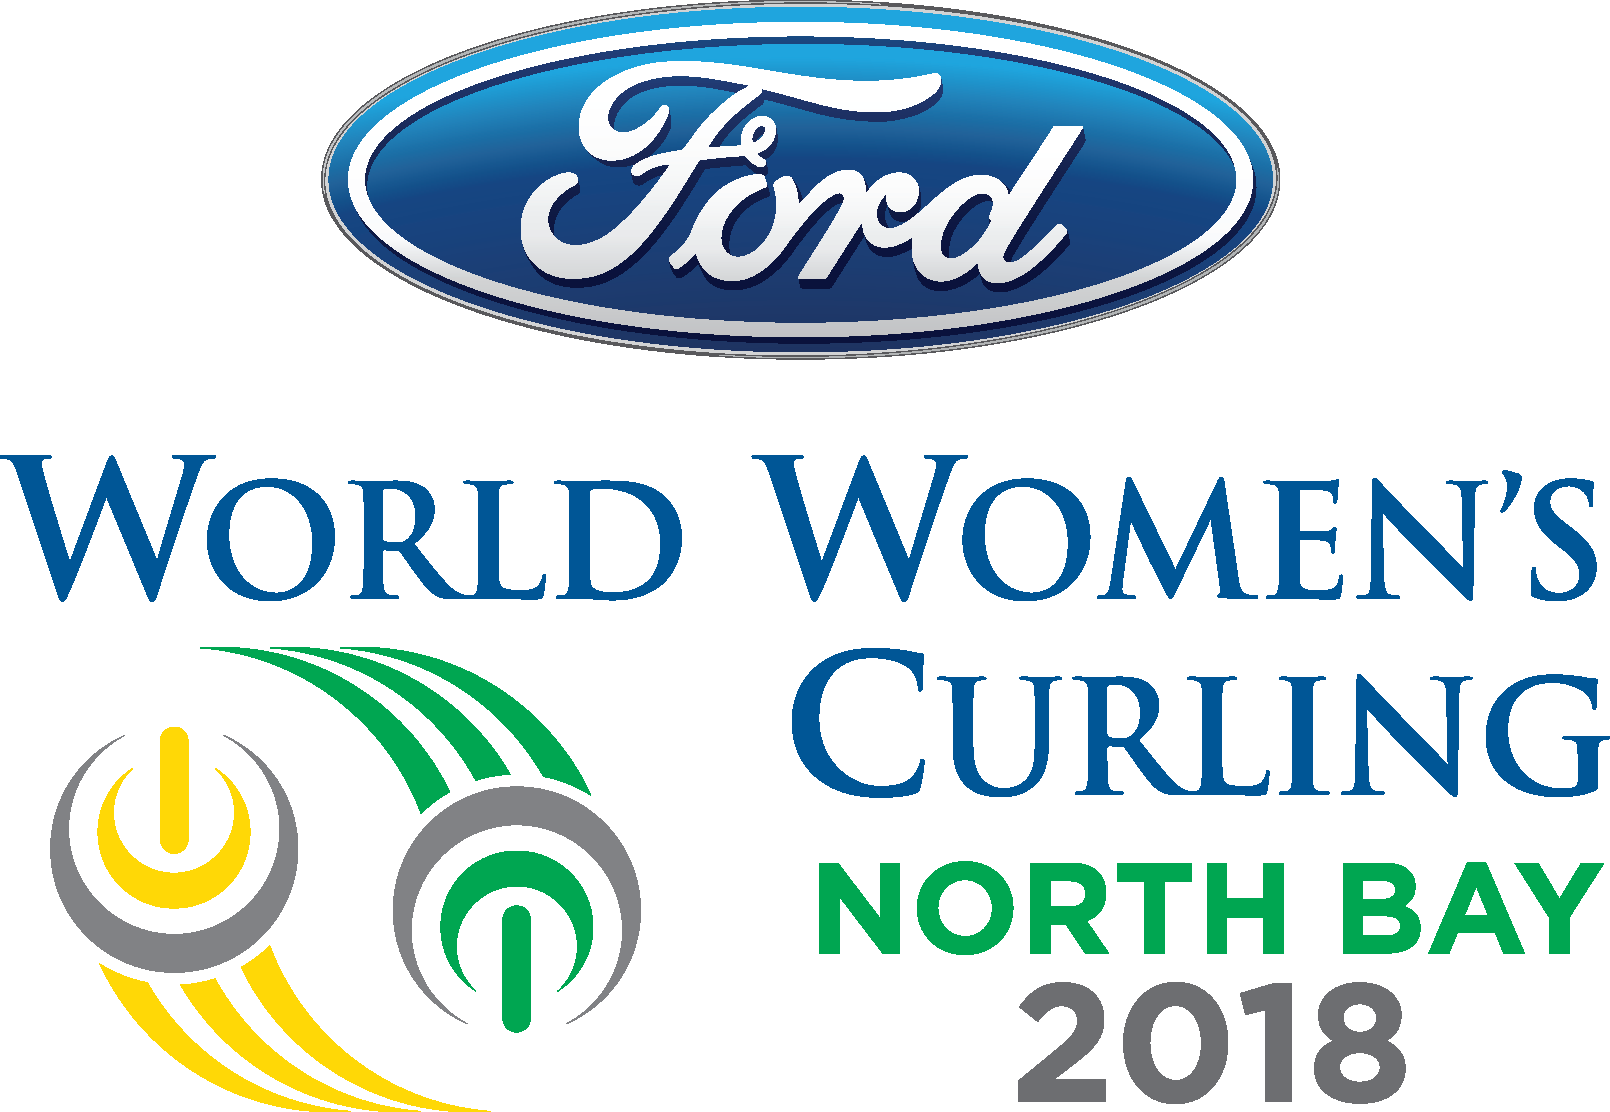 world woman's curling